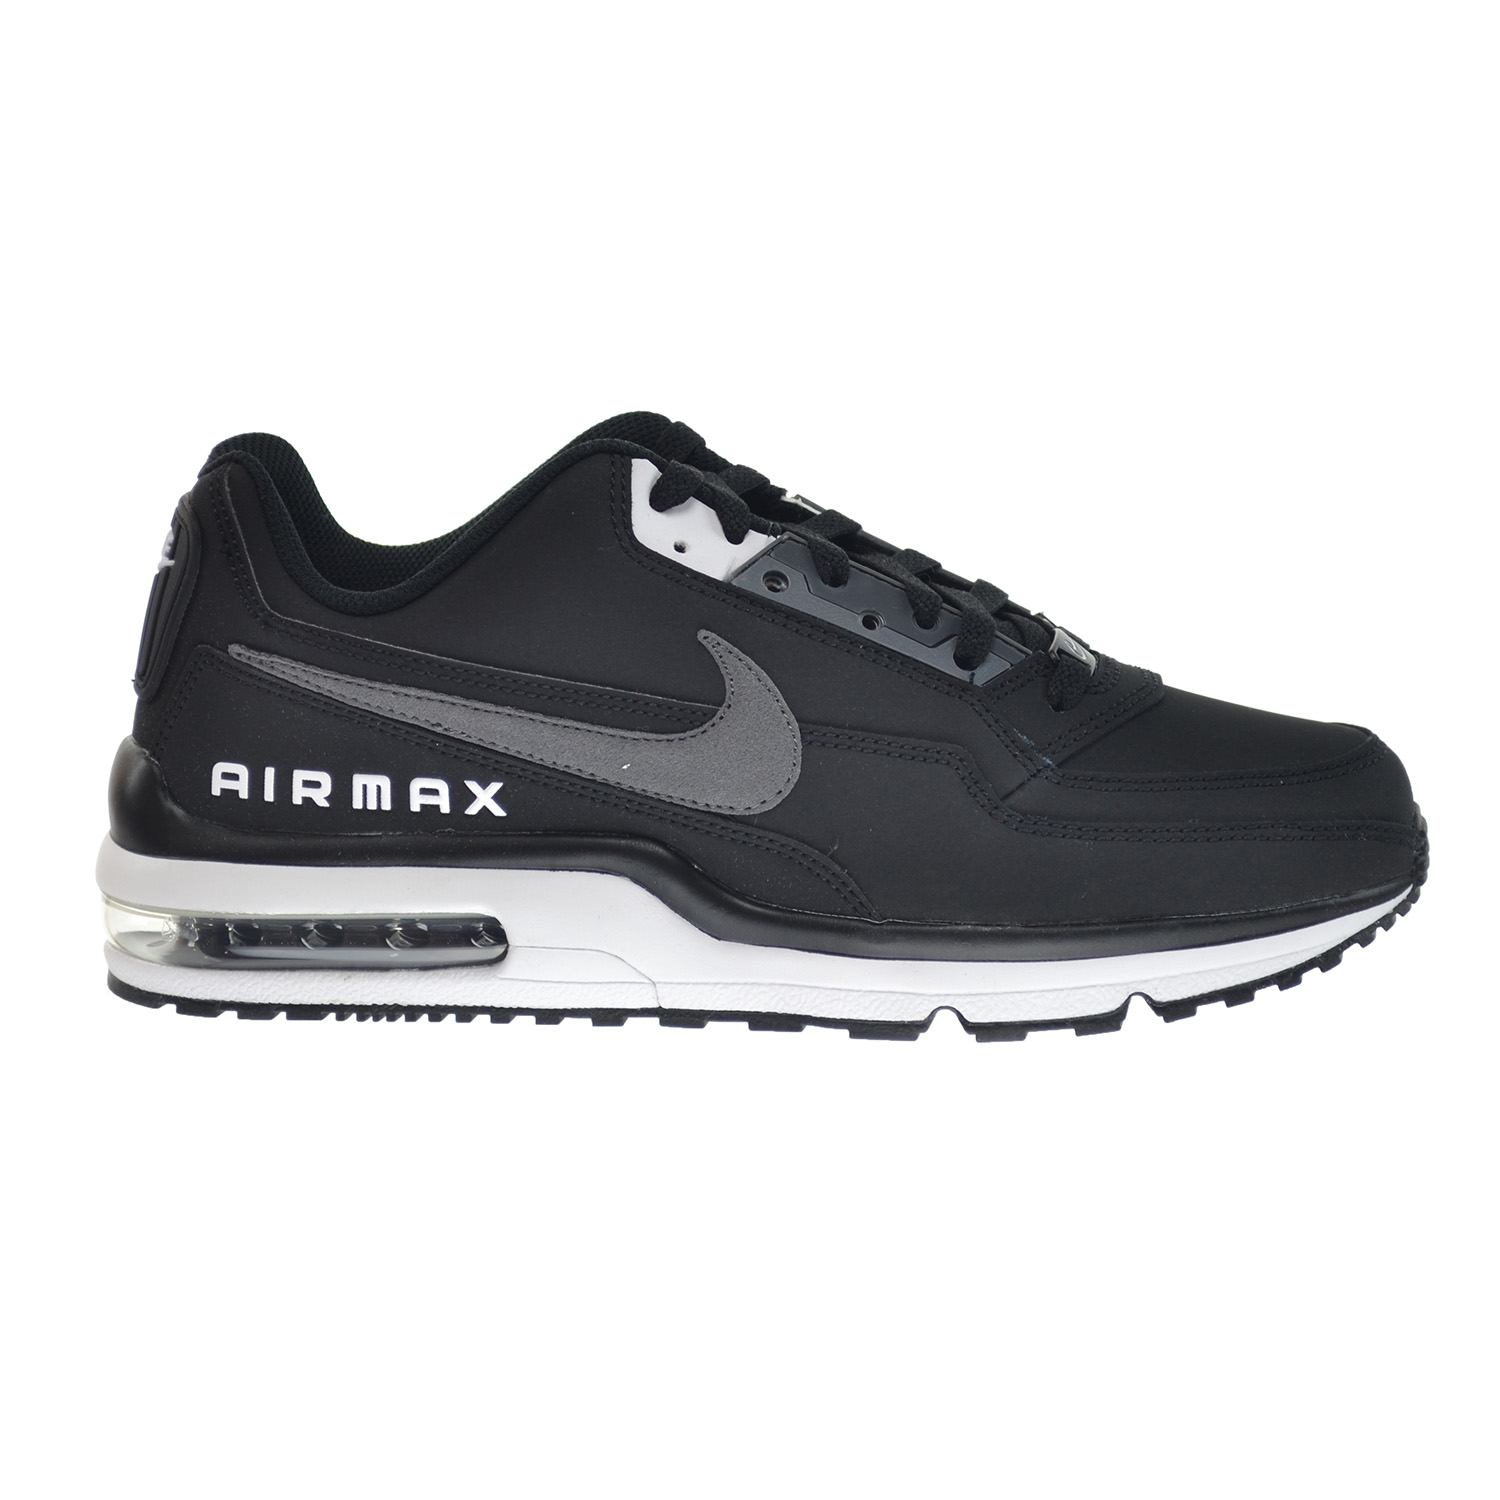 Details about Nike Air Max LTD 3 Mens' Shoes Black Dark Grey White 687977 011